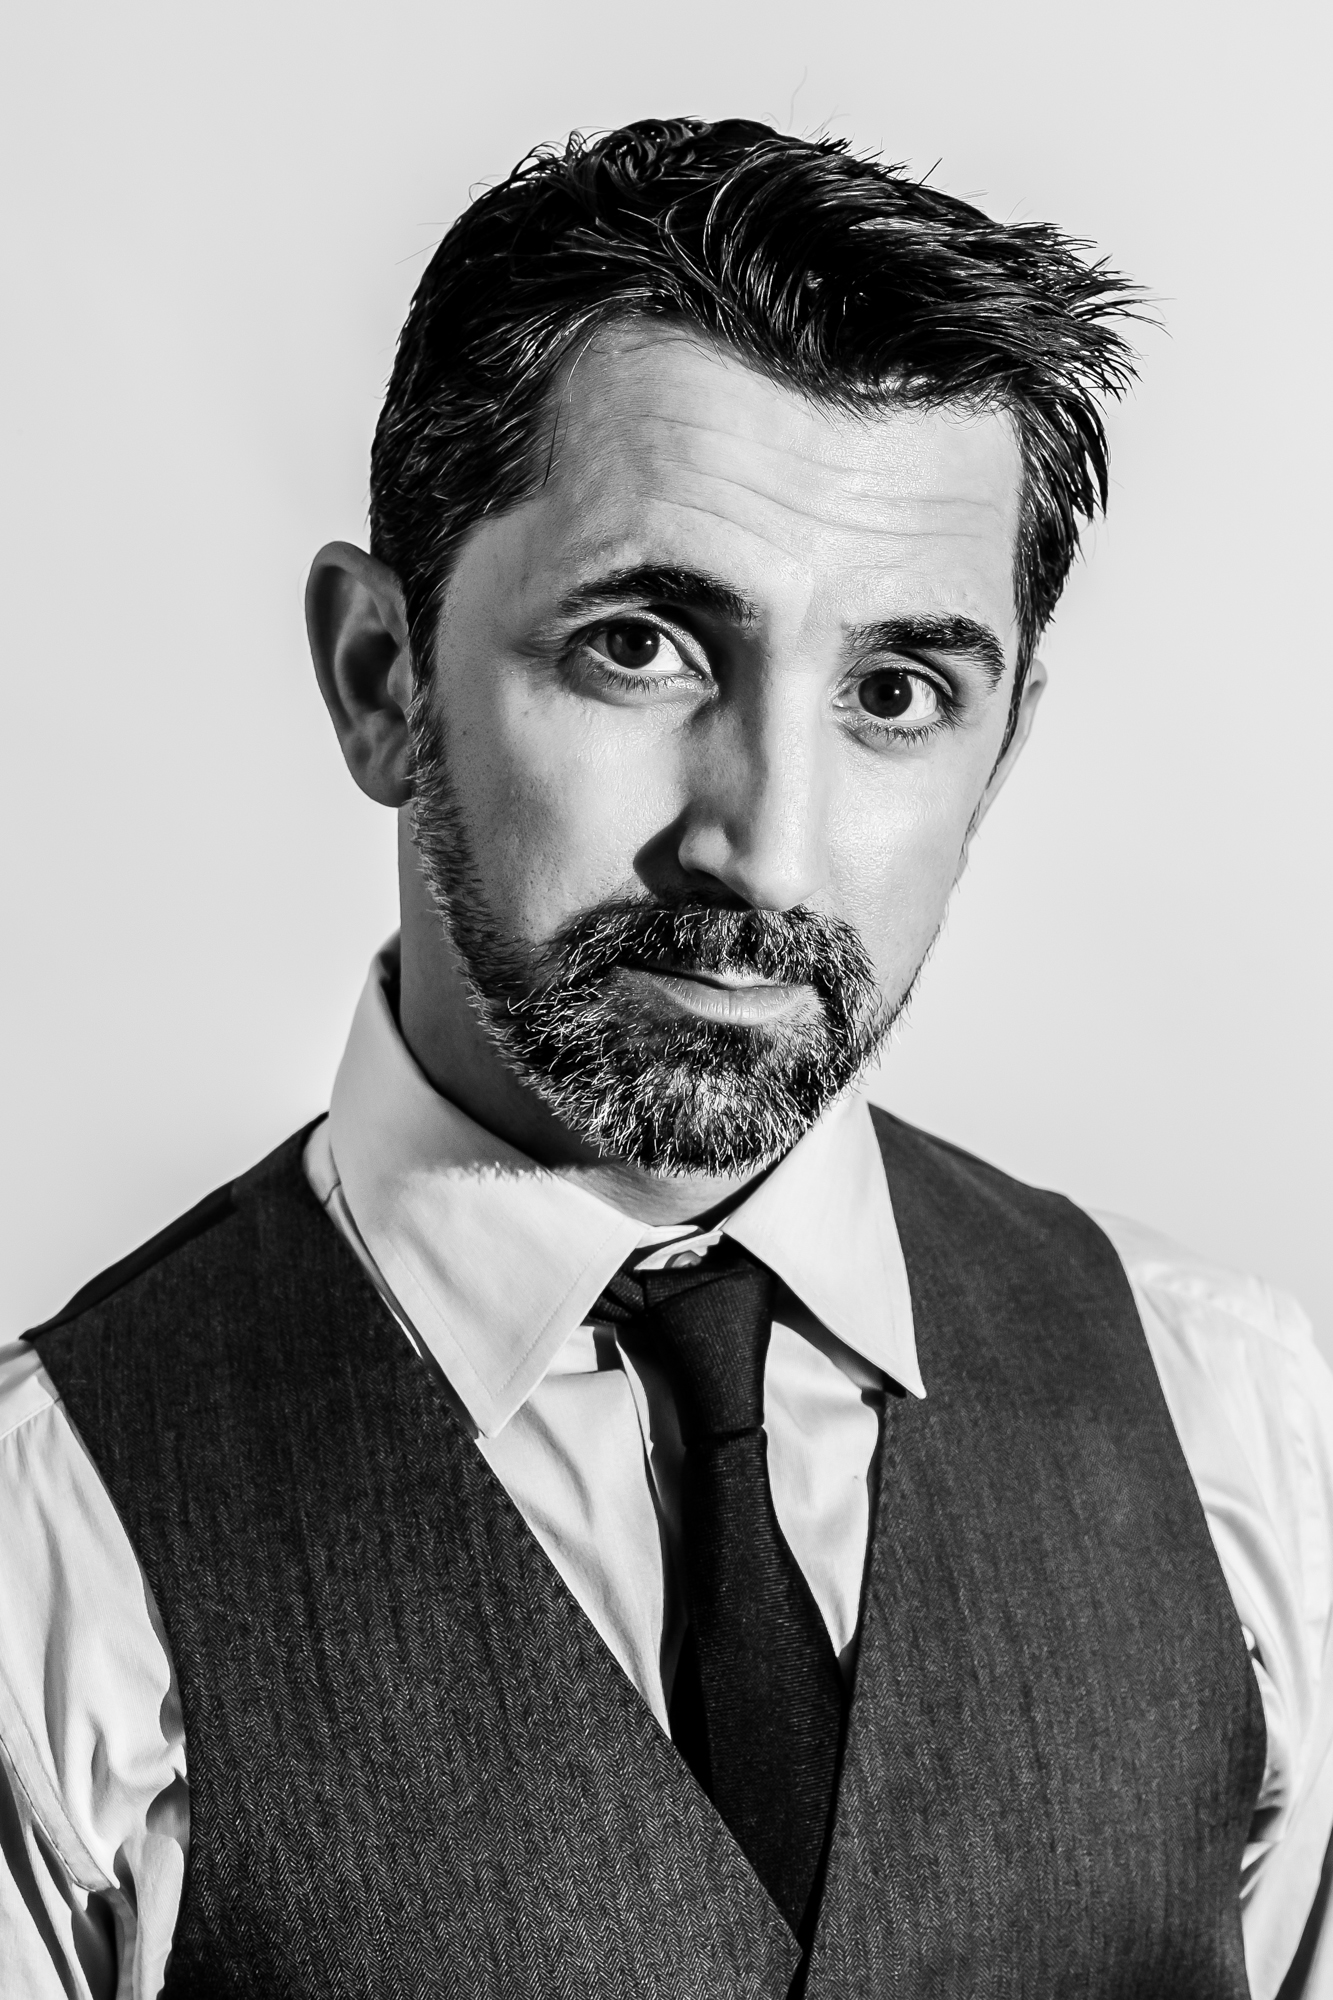 20140515_2014.05.15_JamesMadio_Headshots_website_UD9A5387-Edit-3 copy.jpg